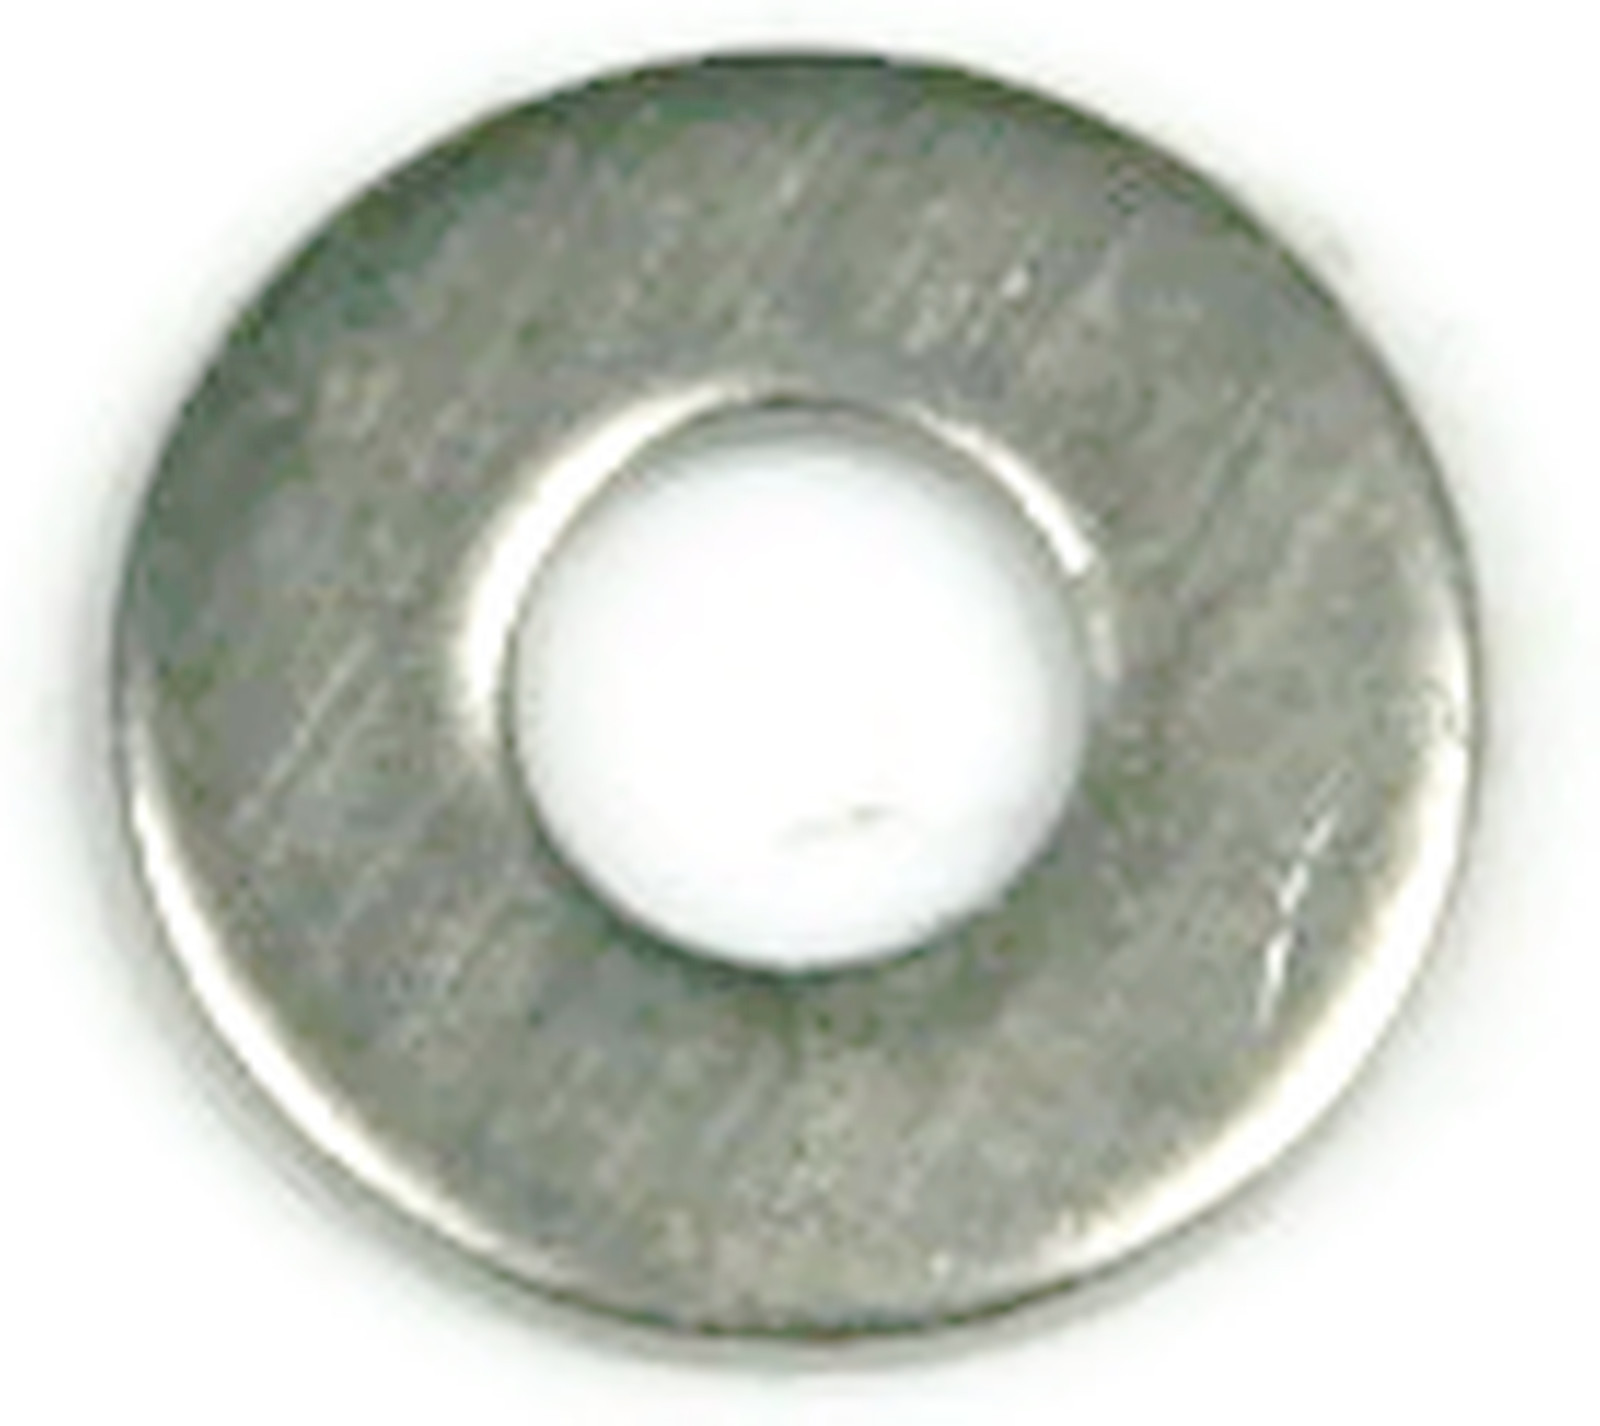 Qty 1000 Stainless Steel NAS Flat Washer #4